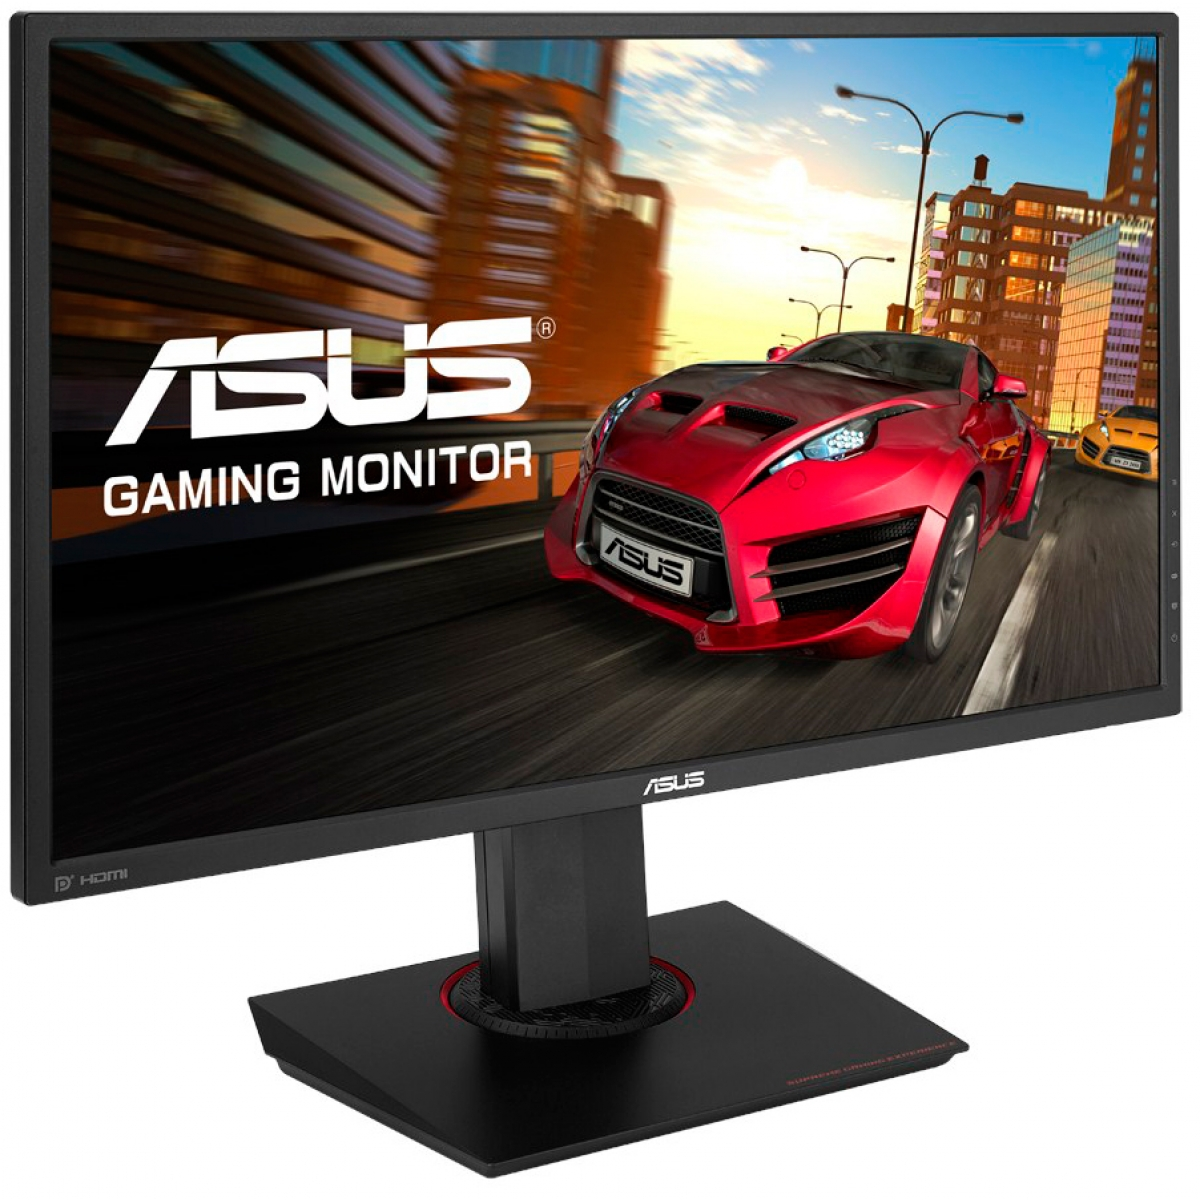 Monitor Gamer Asus 27 Pol, WQHD, 144Hz, 1ms, AMD FreeSync, MG278Q